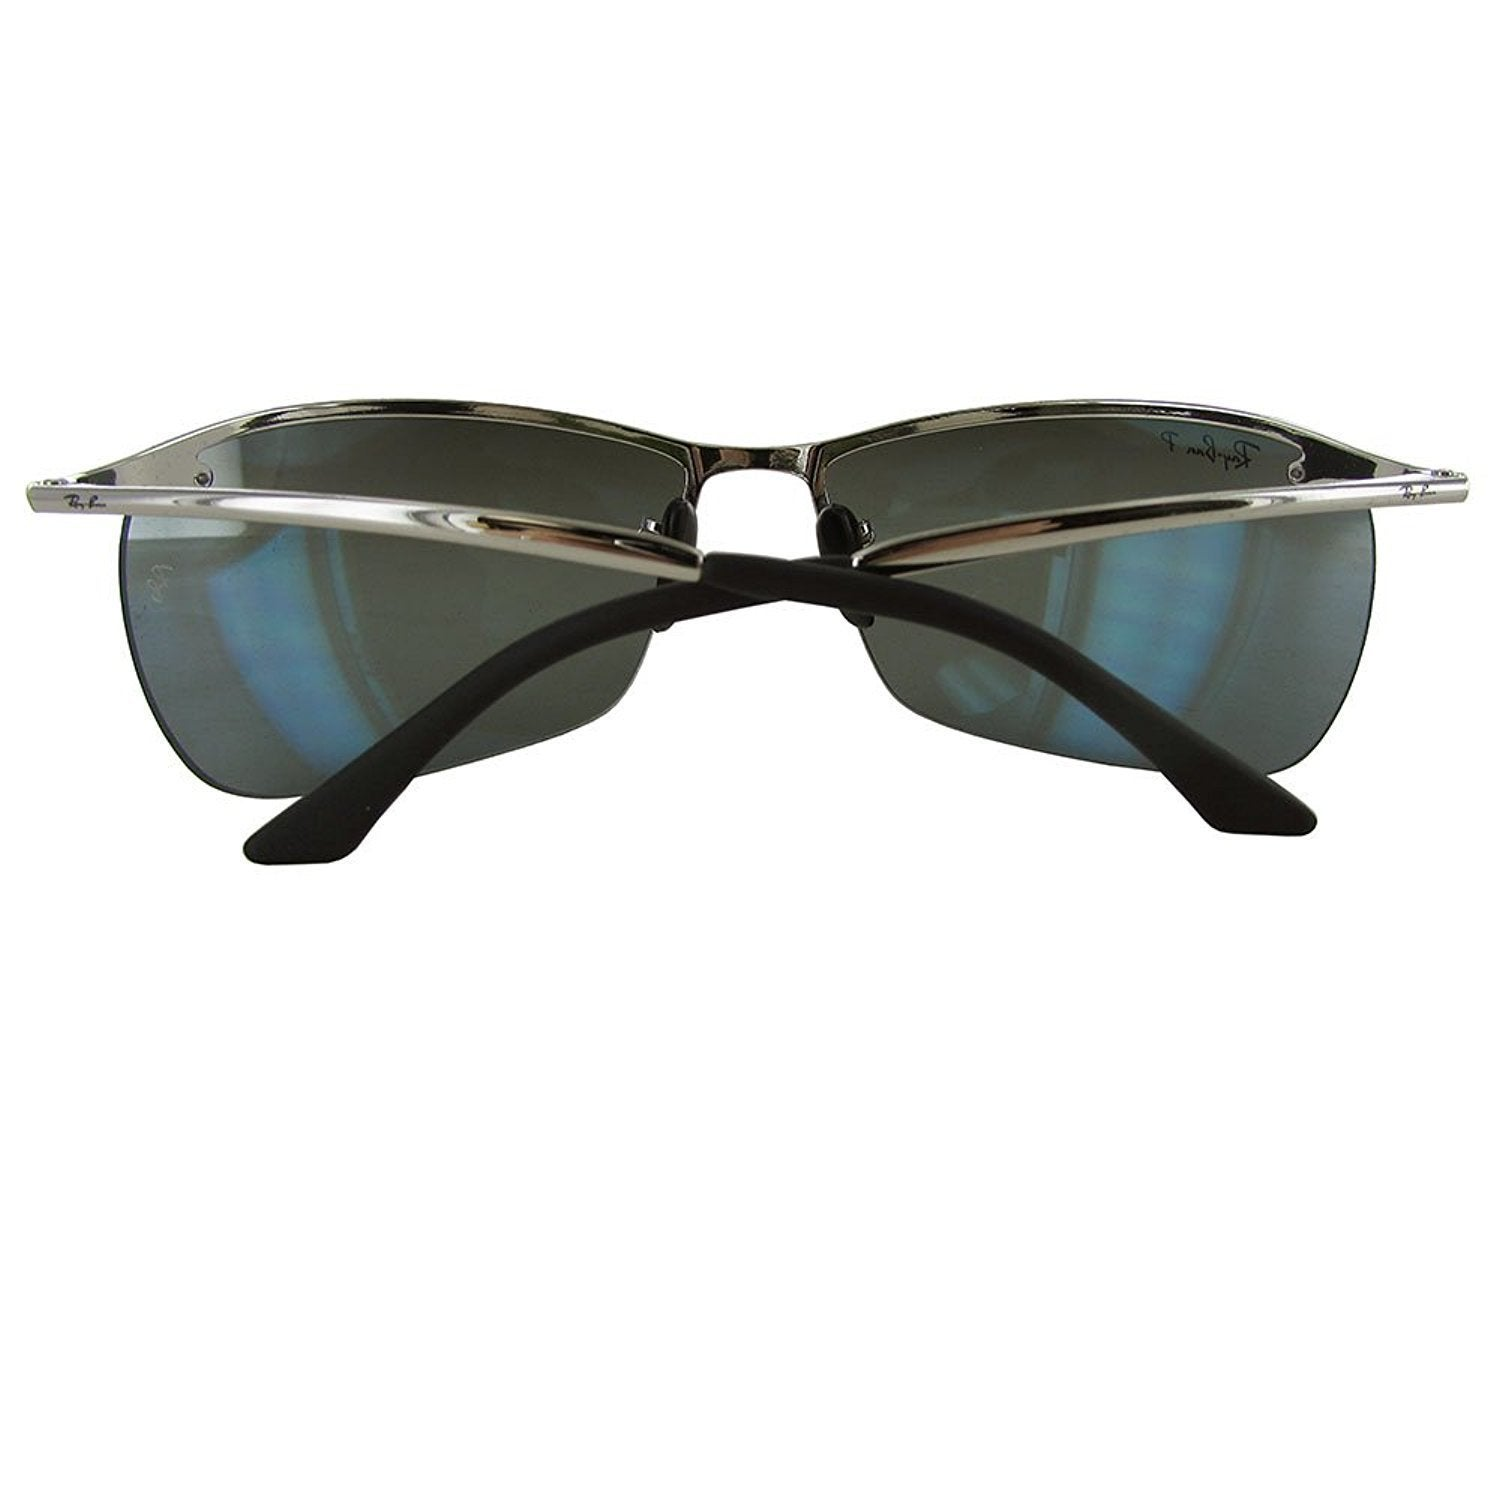 eec3dfc8b01 Shop Ray-Ban Unisex RB3544 003 5L Silver Frame Polarized Grey Mirror  Chromance 64 mm Lens Sunglasses - Free Shipping Today - Overstock - 16740884